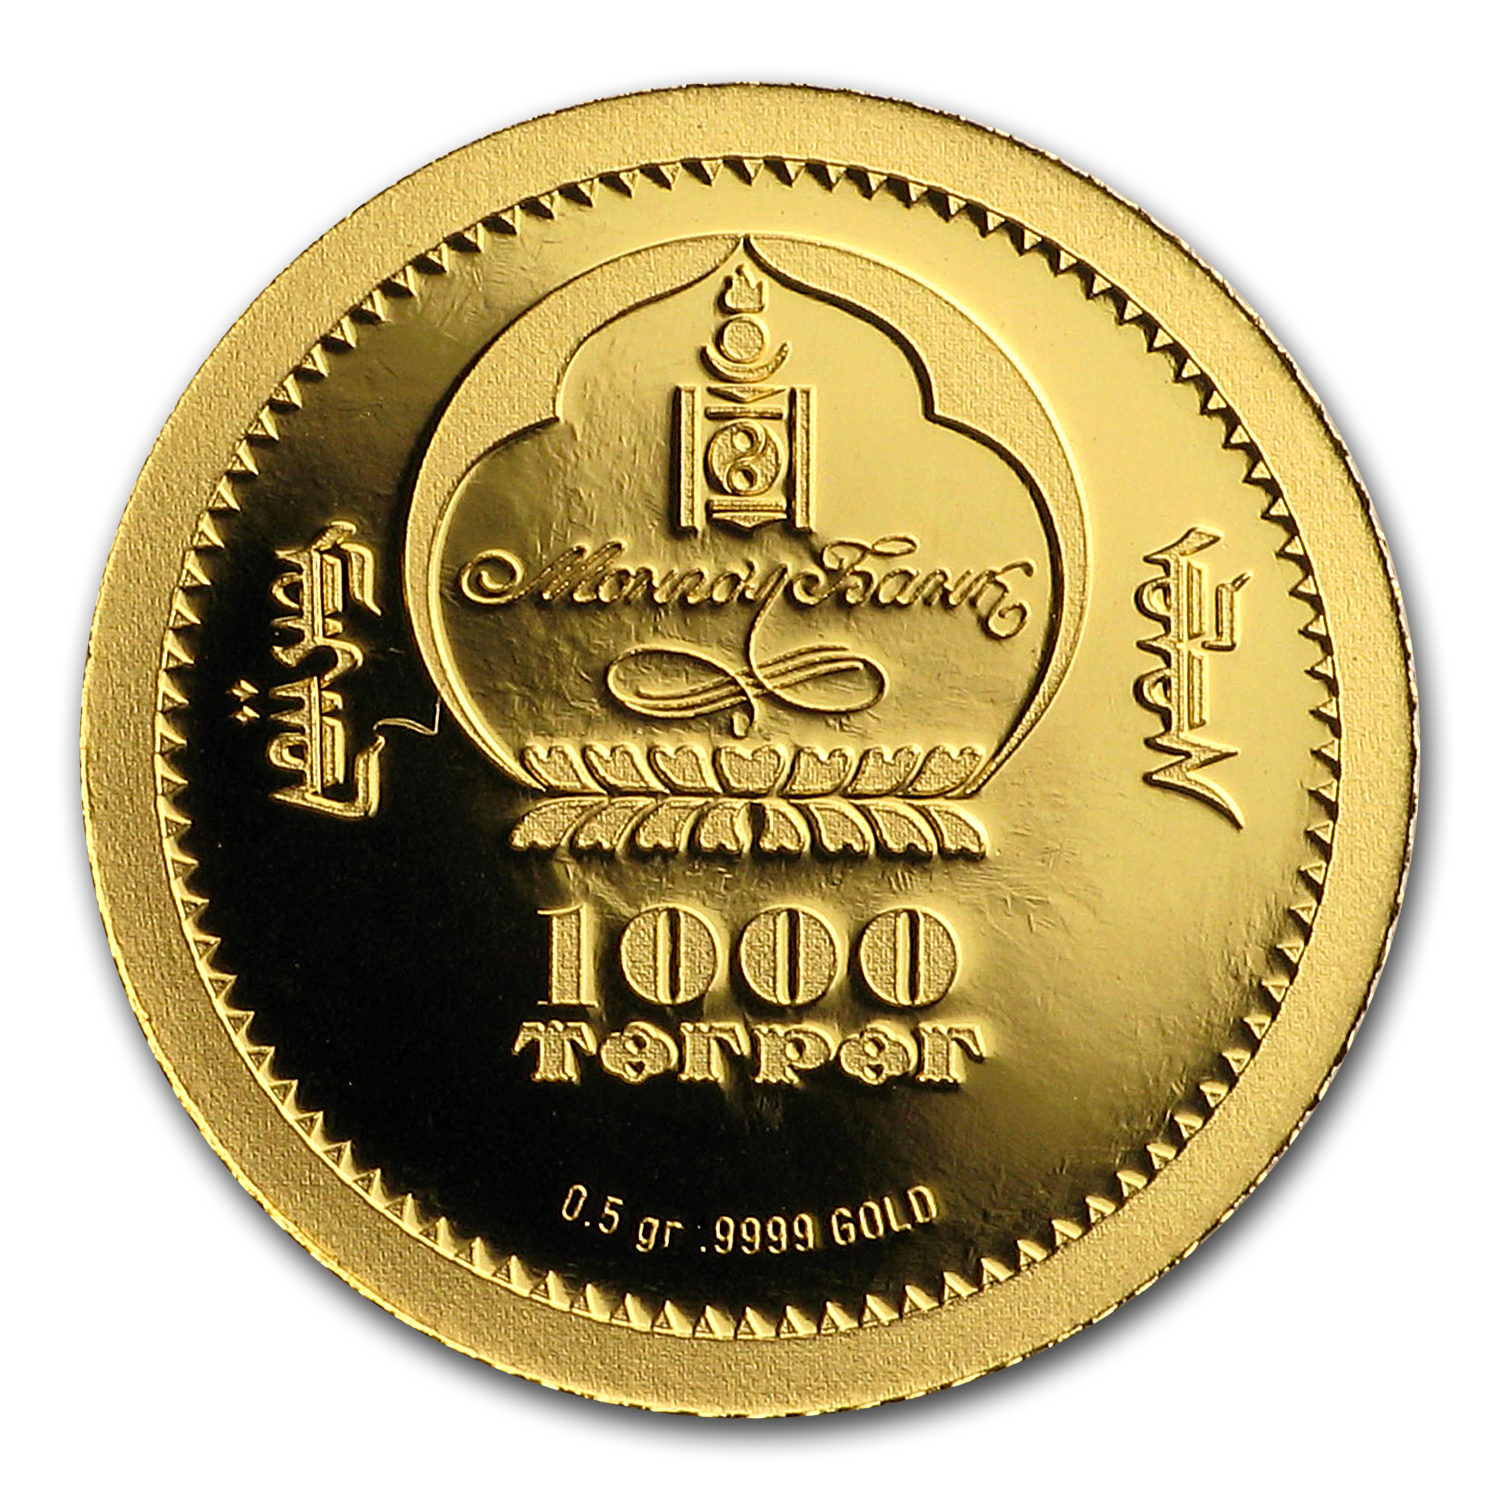 2017 Mongolia 1/2 gram Prf Gold 1,000 Togrog Year of the Rooster